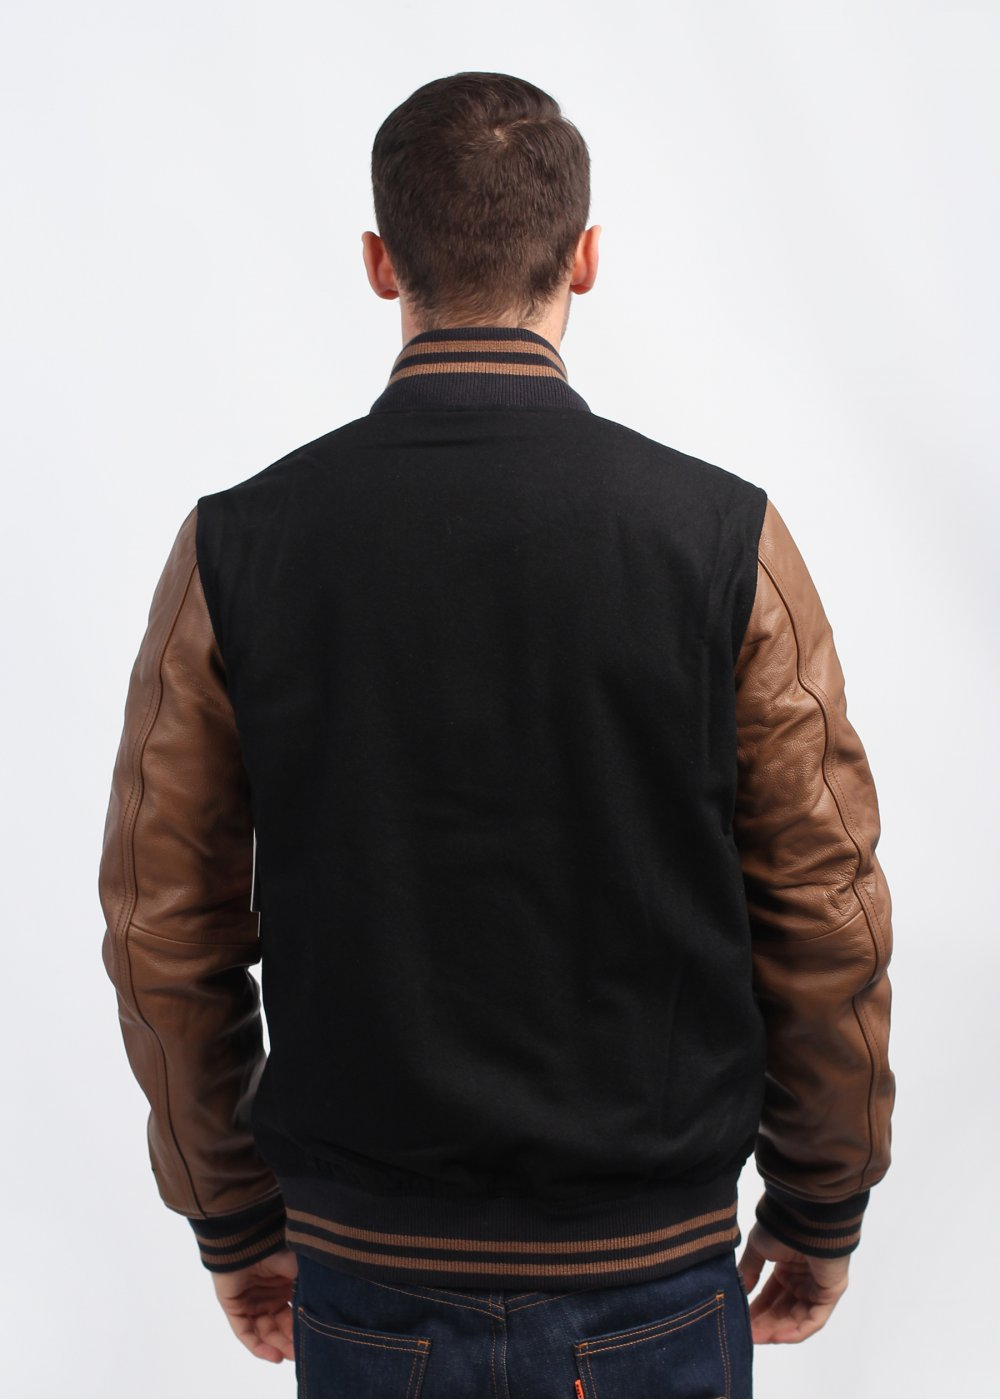 Nike Destroyer Varsity Jacket Black Military Brown